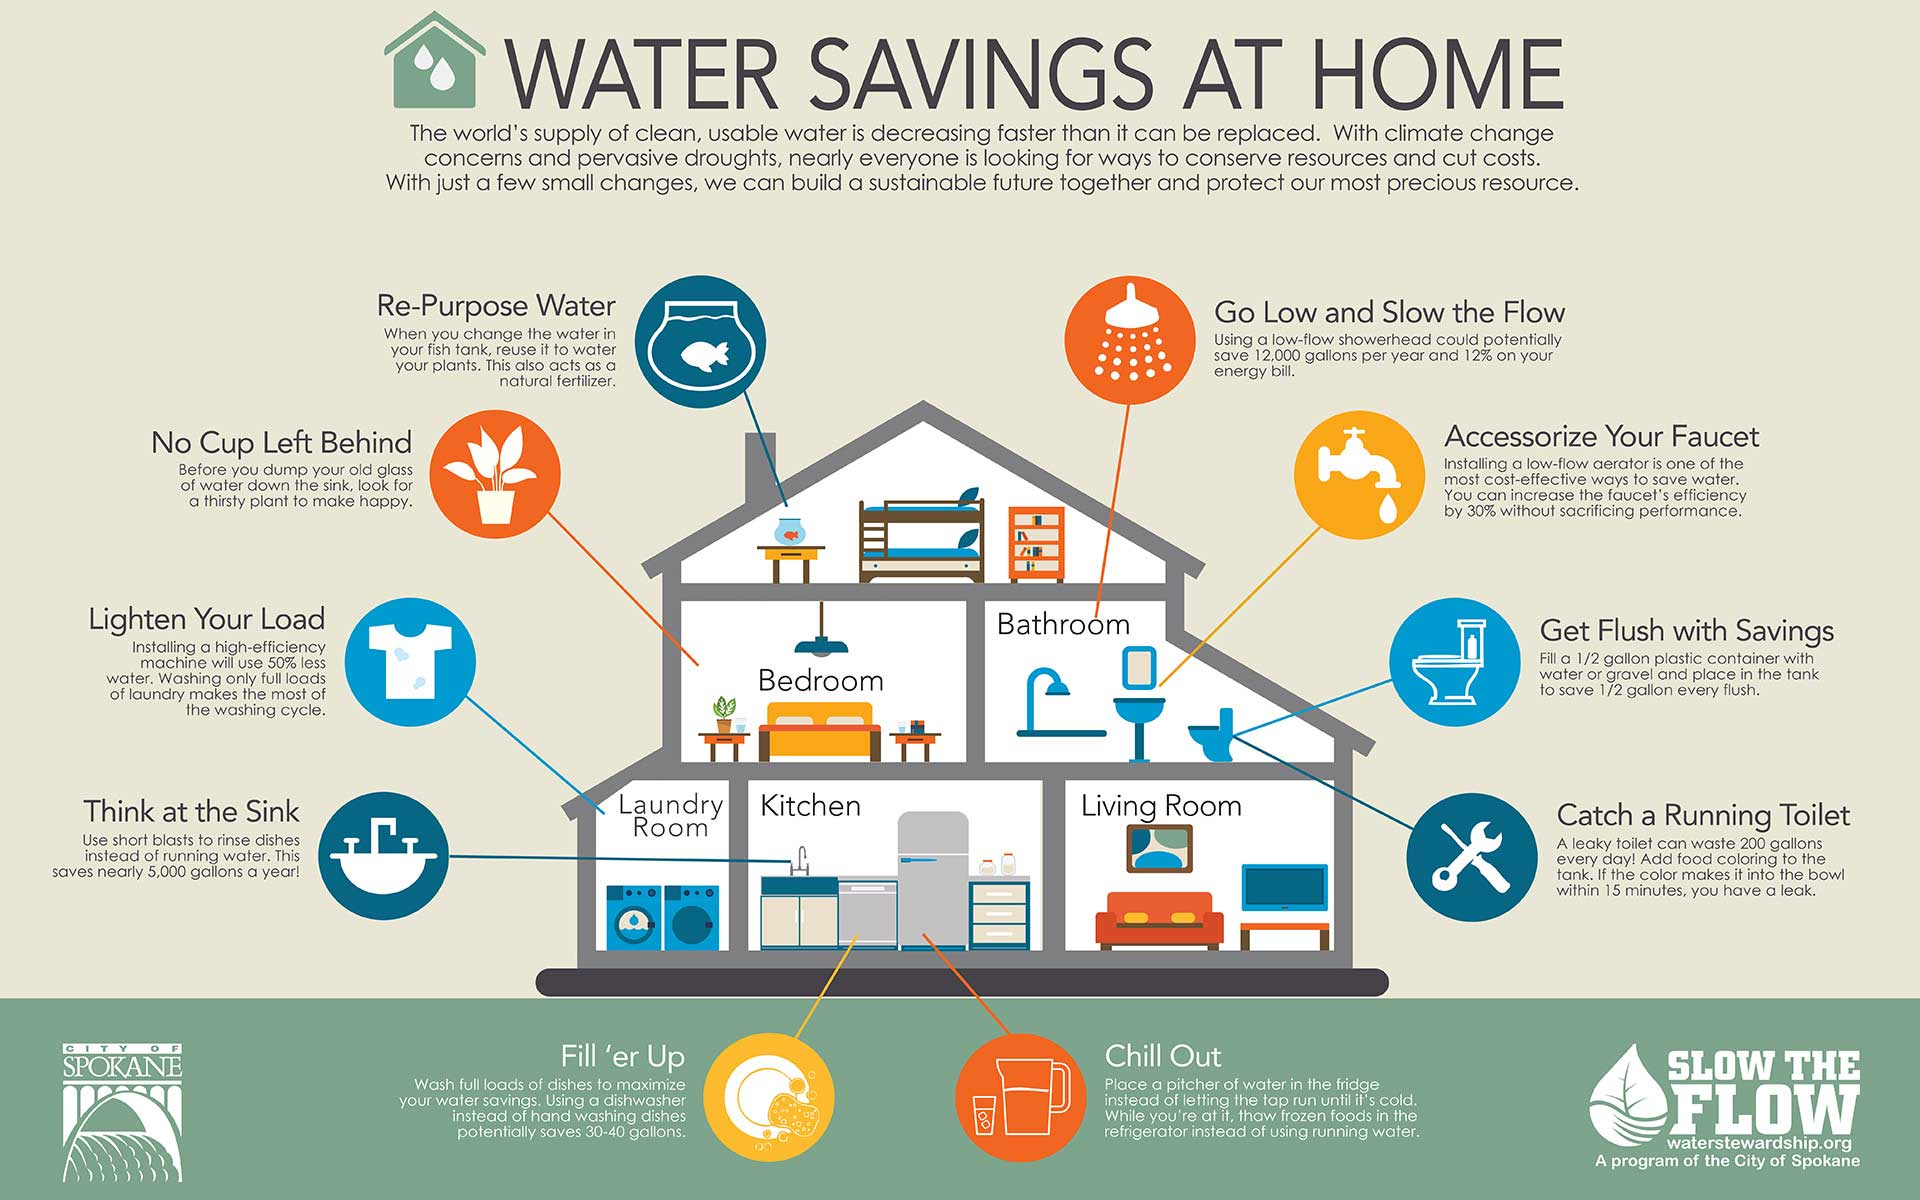 Slow the flow city of spokane washington for How to save water in your house